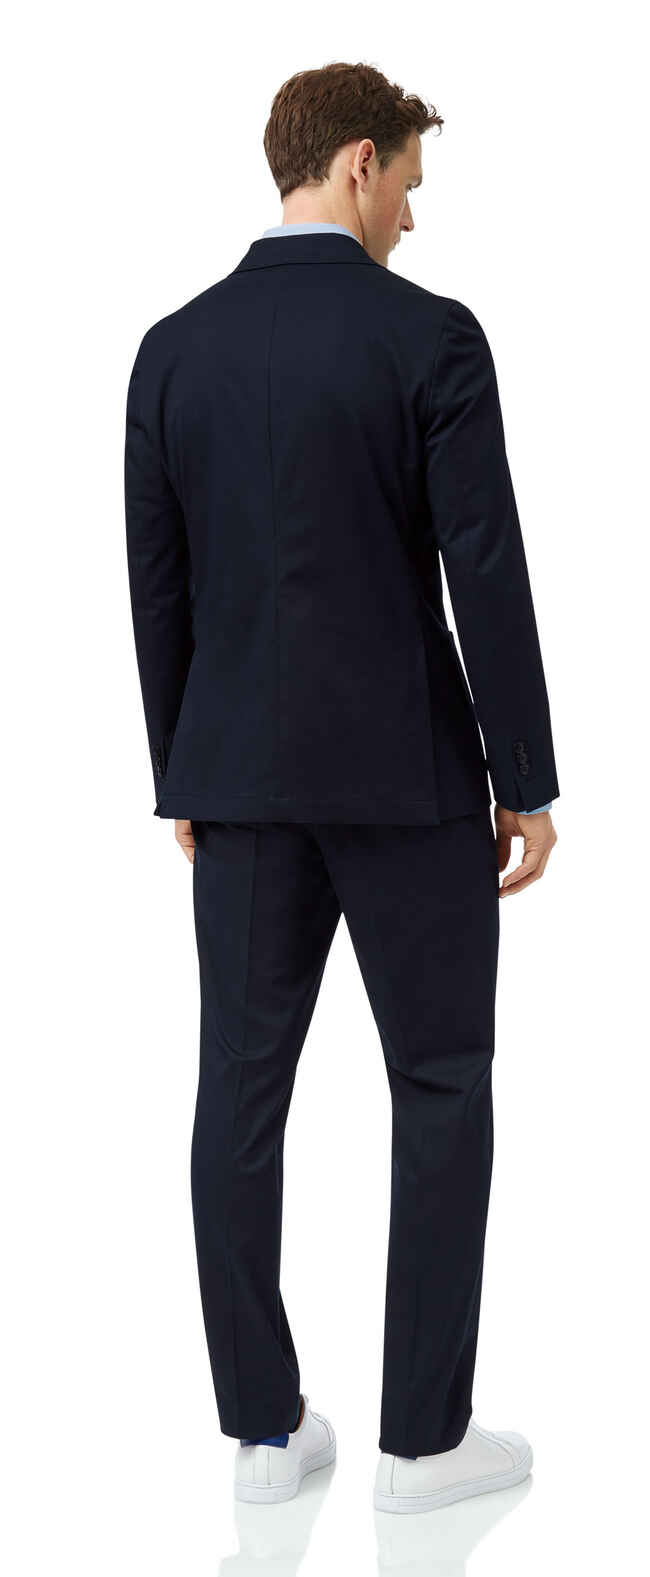 Navy slim fit Italian cotton suit